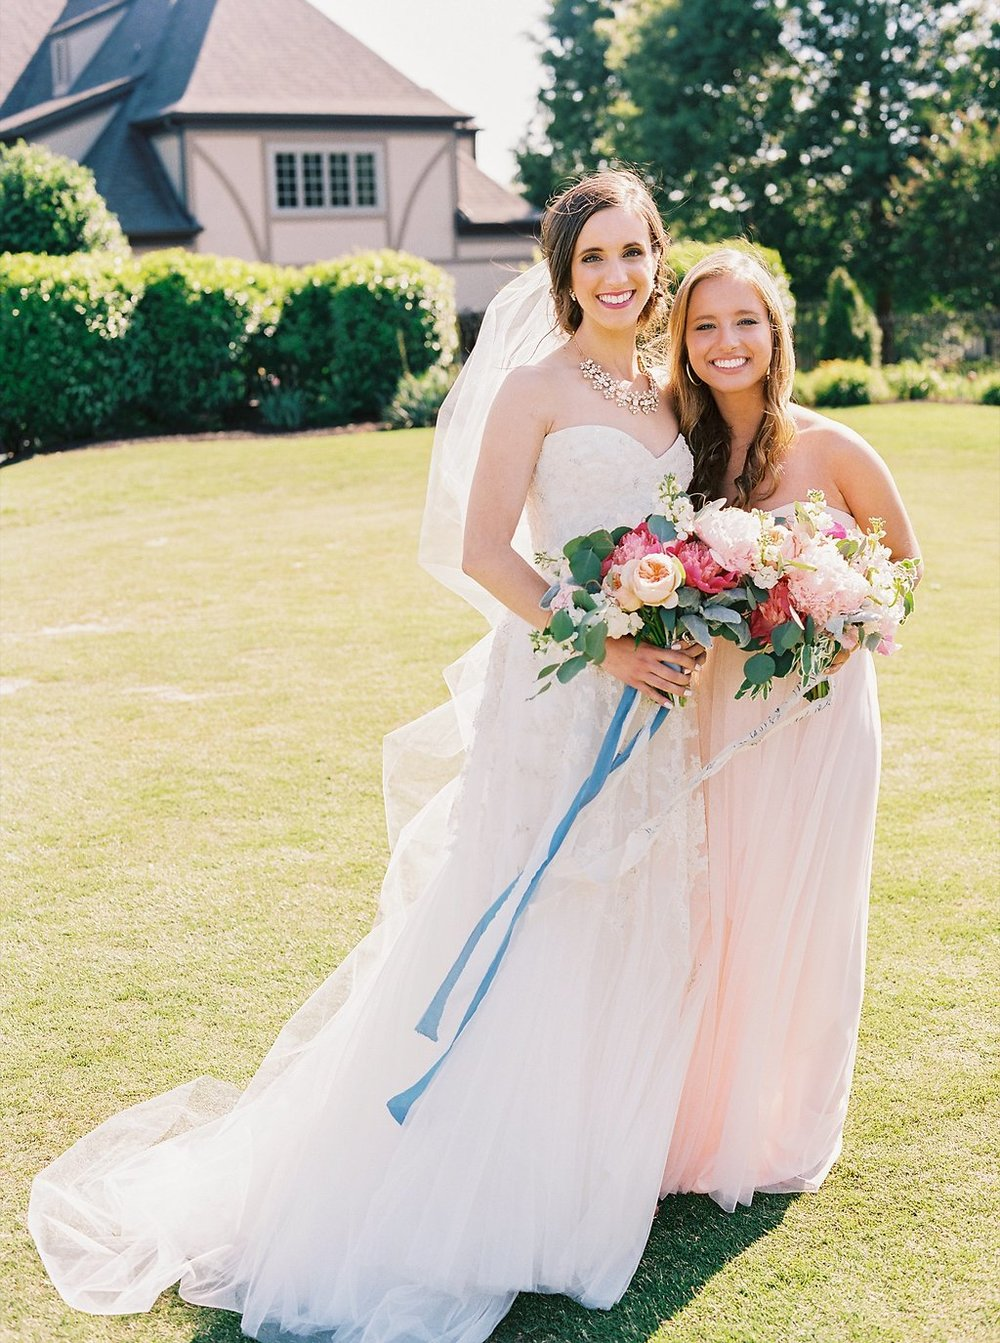 Sweet Bride and Maid of Honor Moment | Blush and Navy Wedding with Fuchsia, French Blue and Gold Accents | Simply Jessica Marie's Southern Wedding | Photo by Perry Vaile Photography